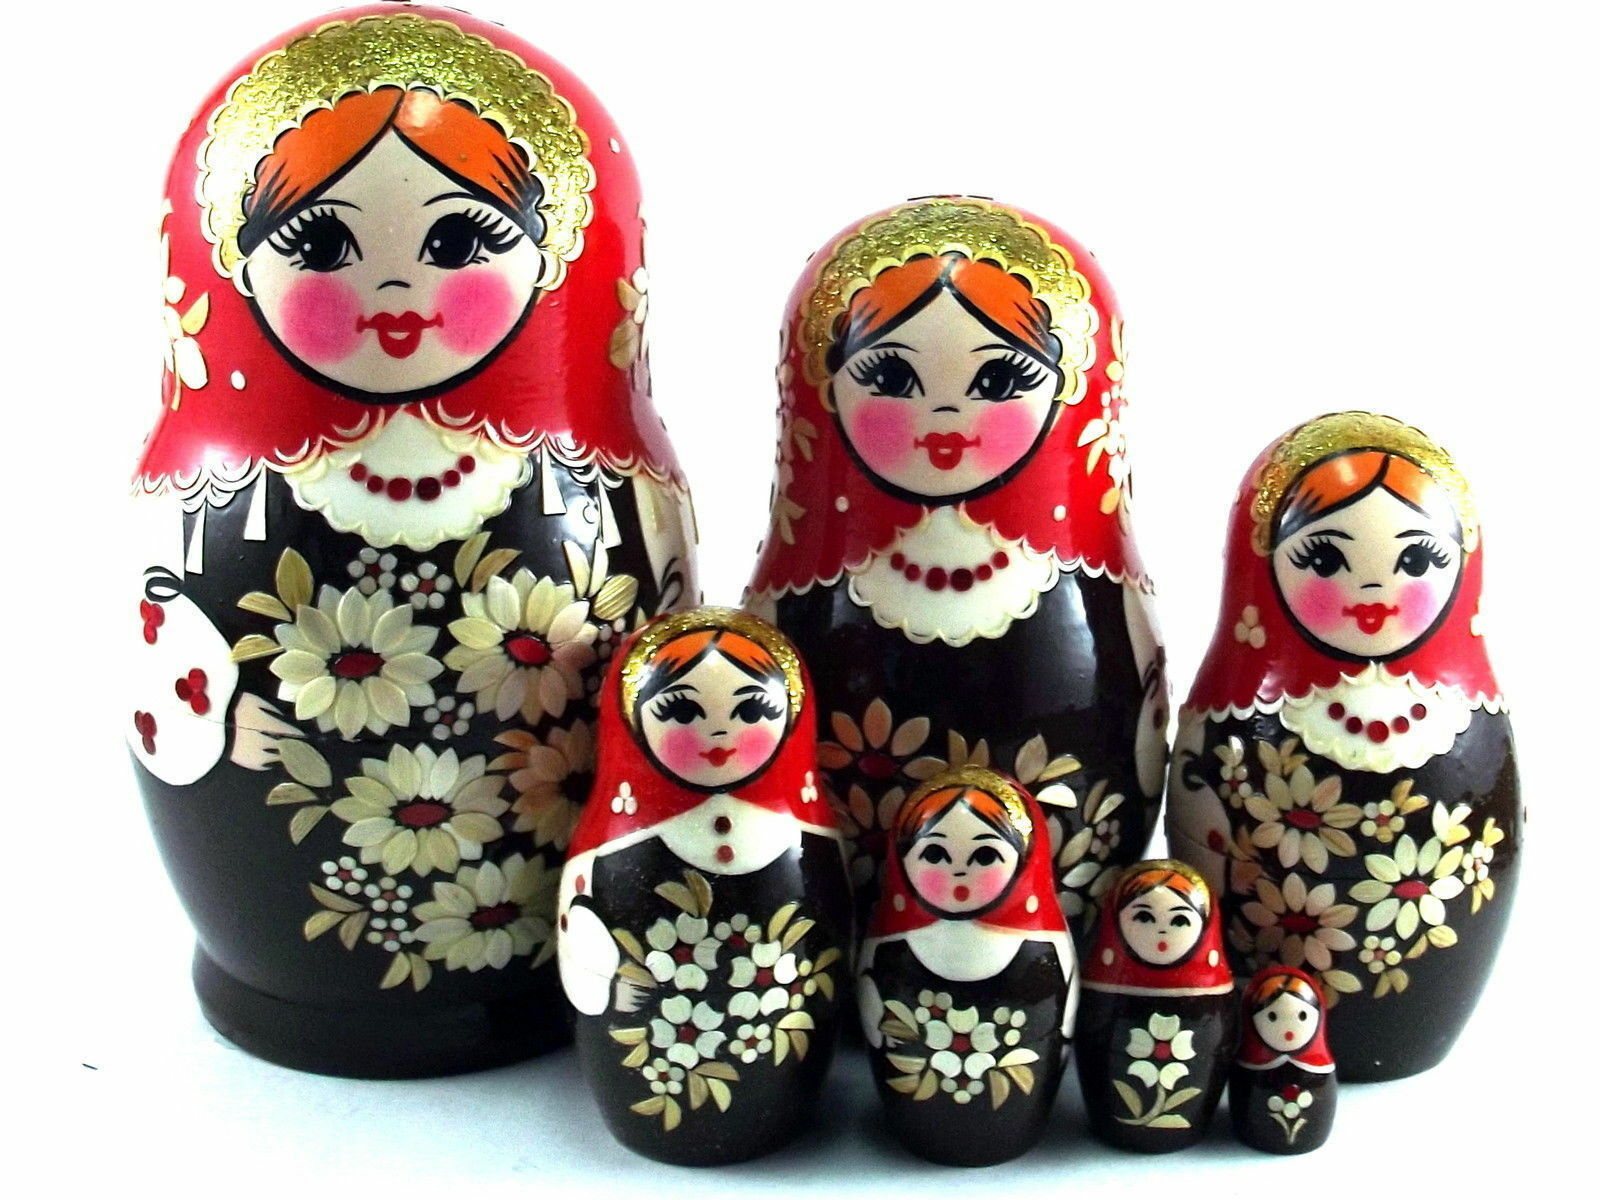 Nidification poupées Russe Matriochka traditionnelle babushka empilable Nouvelle Set 7 PC 5 IN (environ 12.70 cm)